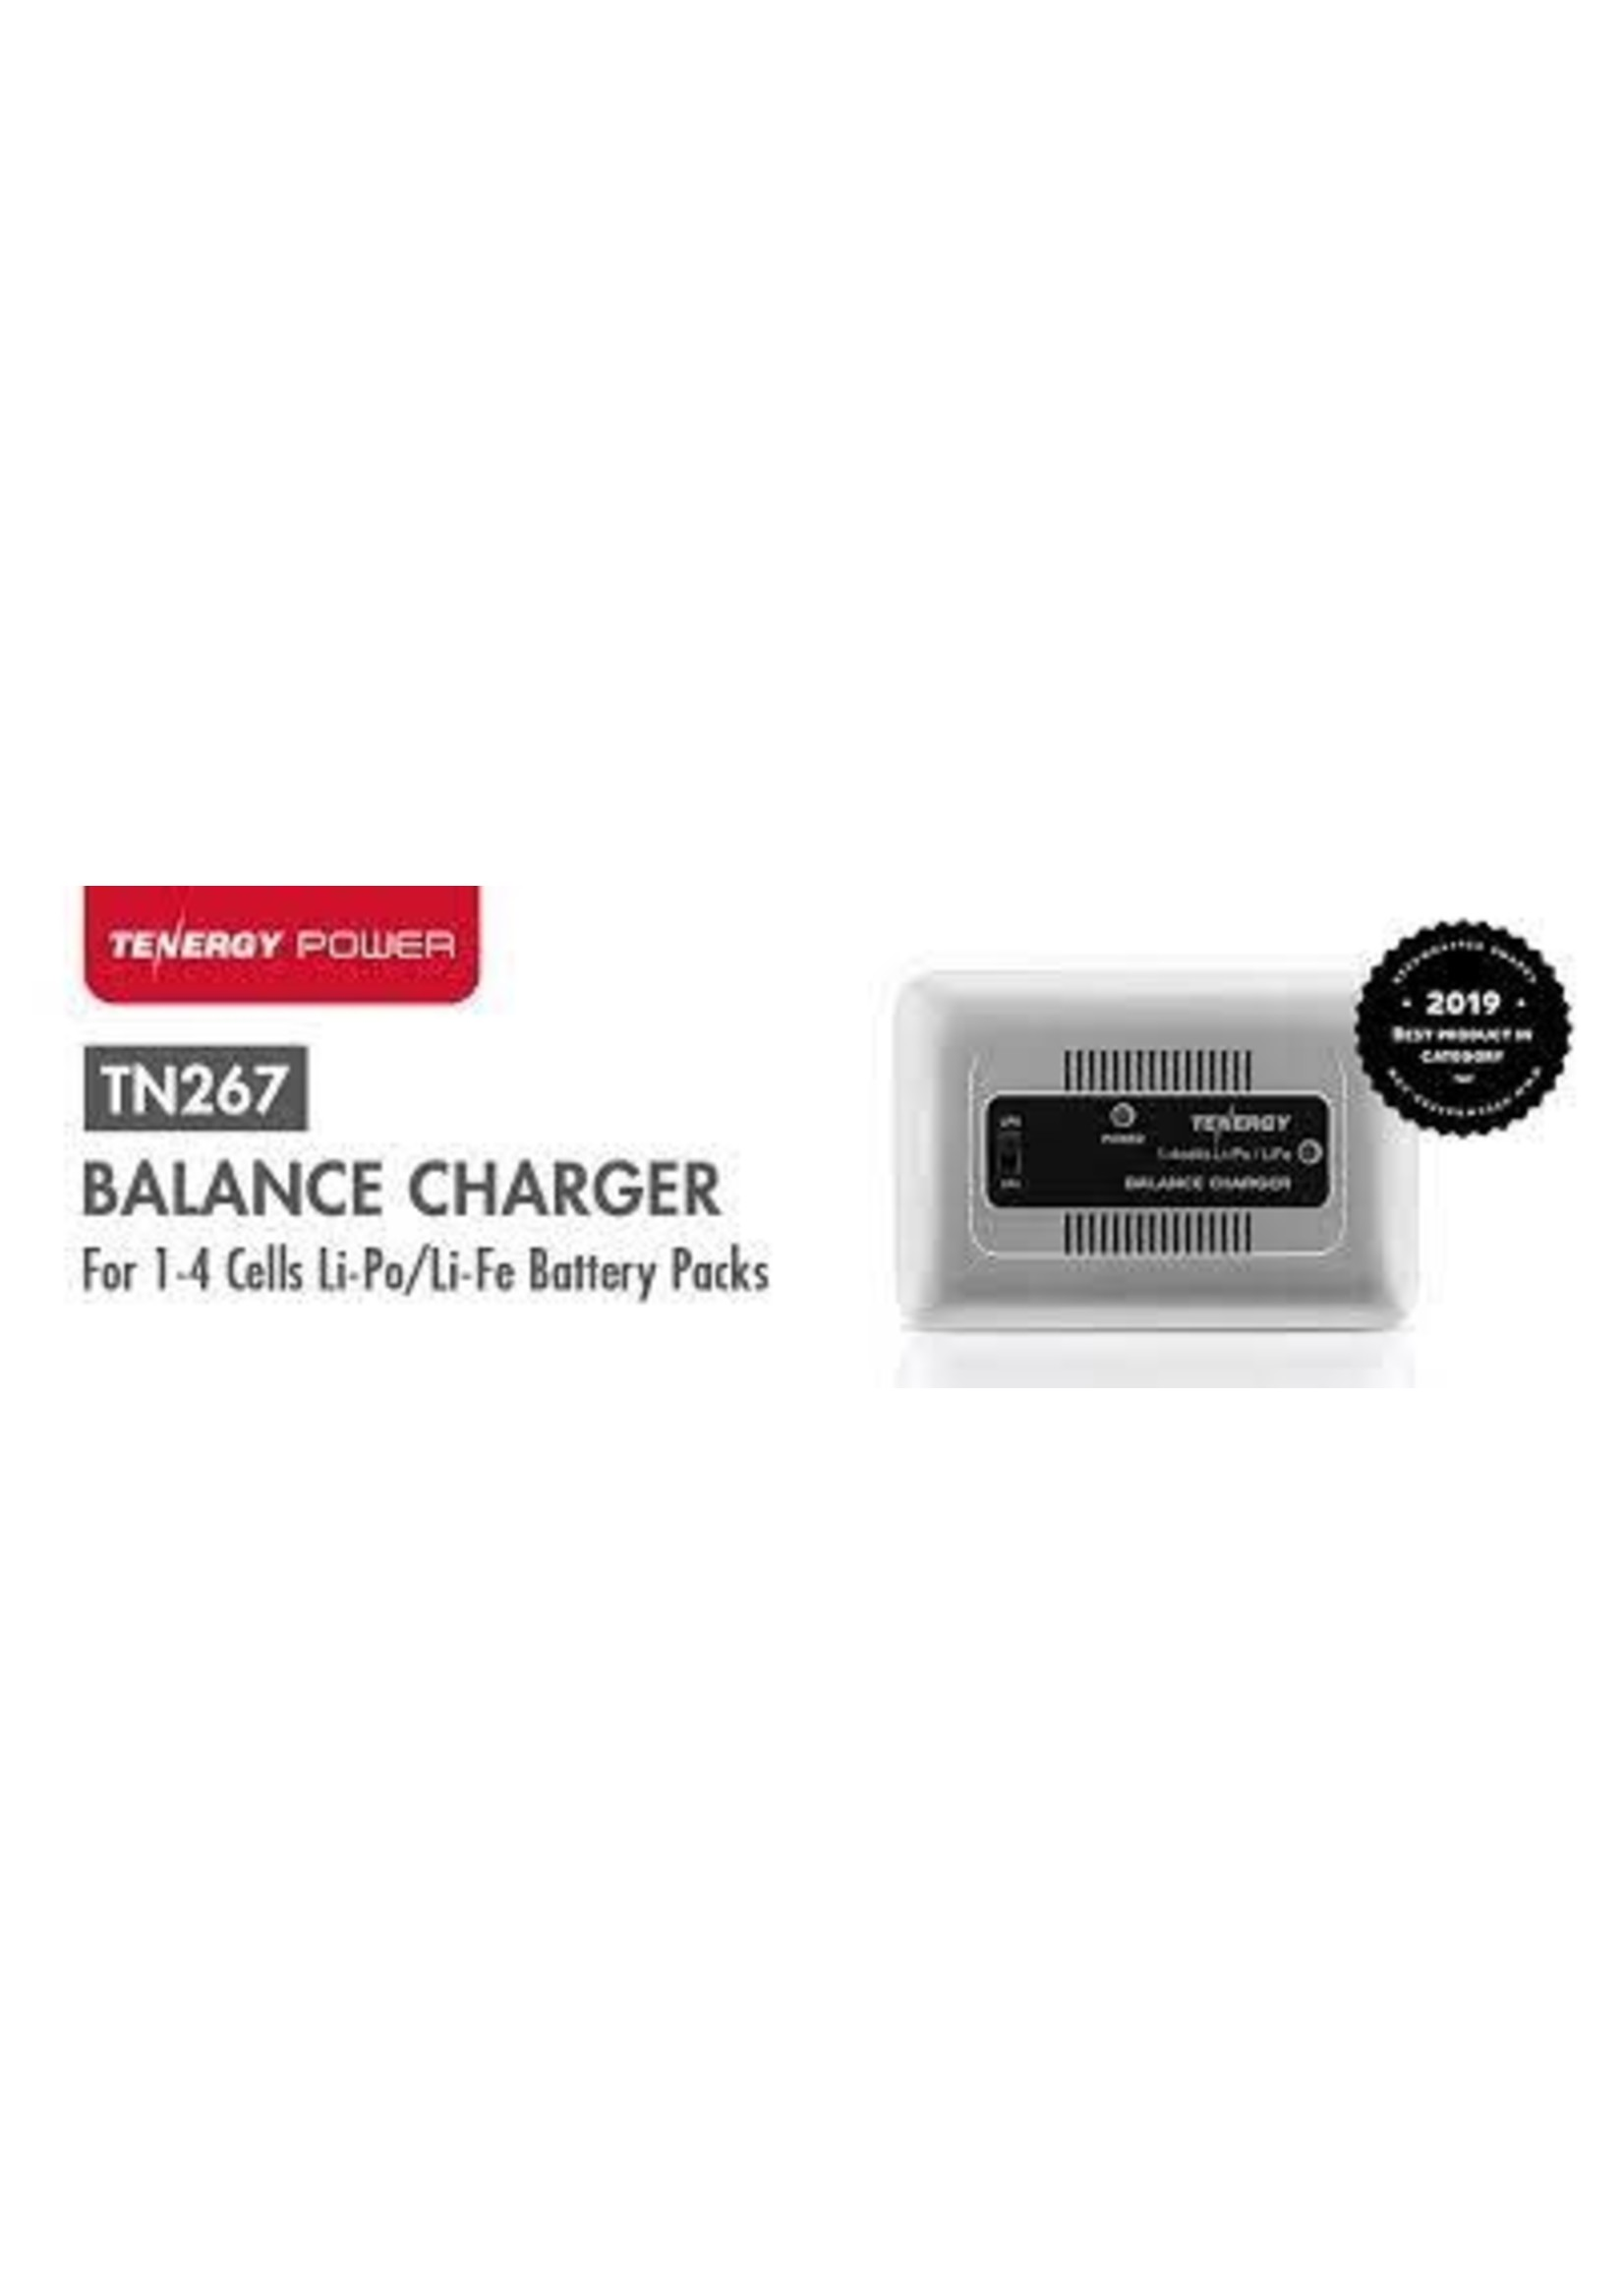 TENERGY Tenergy LiPo/LiFePO4 Balance Charger - 1A Battery Pk Charger for 1S to 4S w/ Power supply